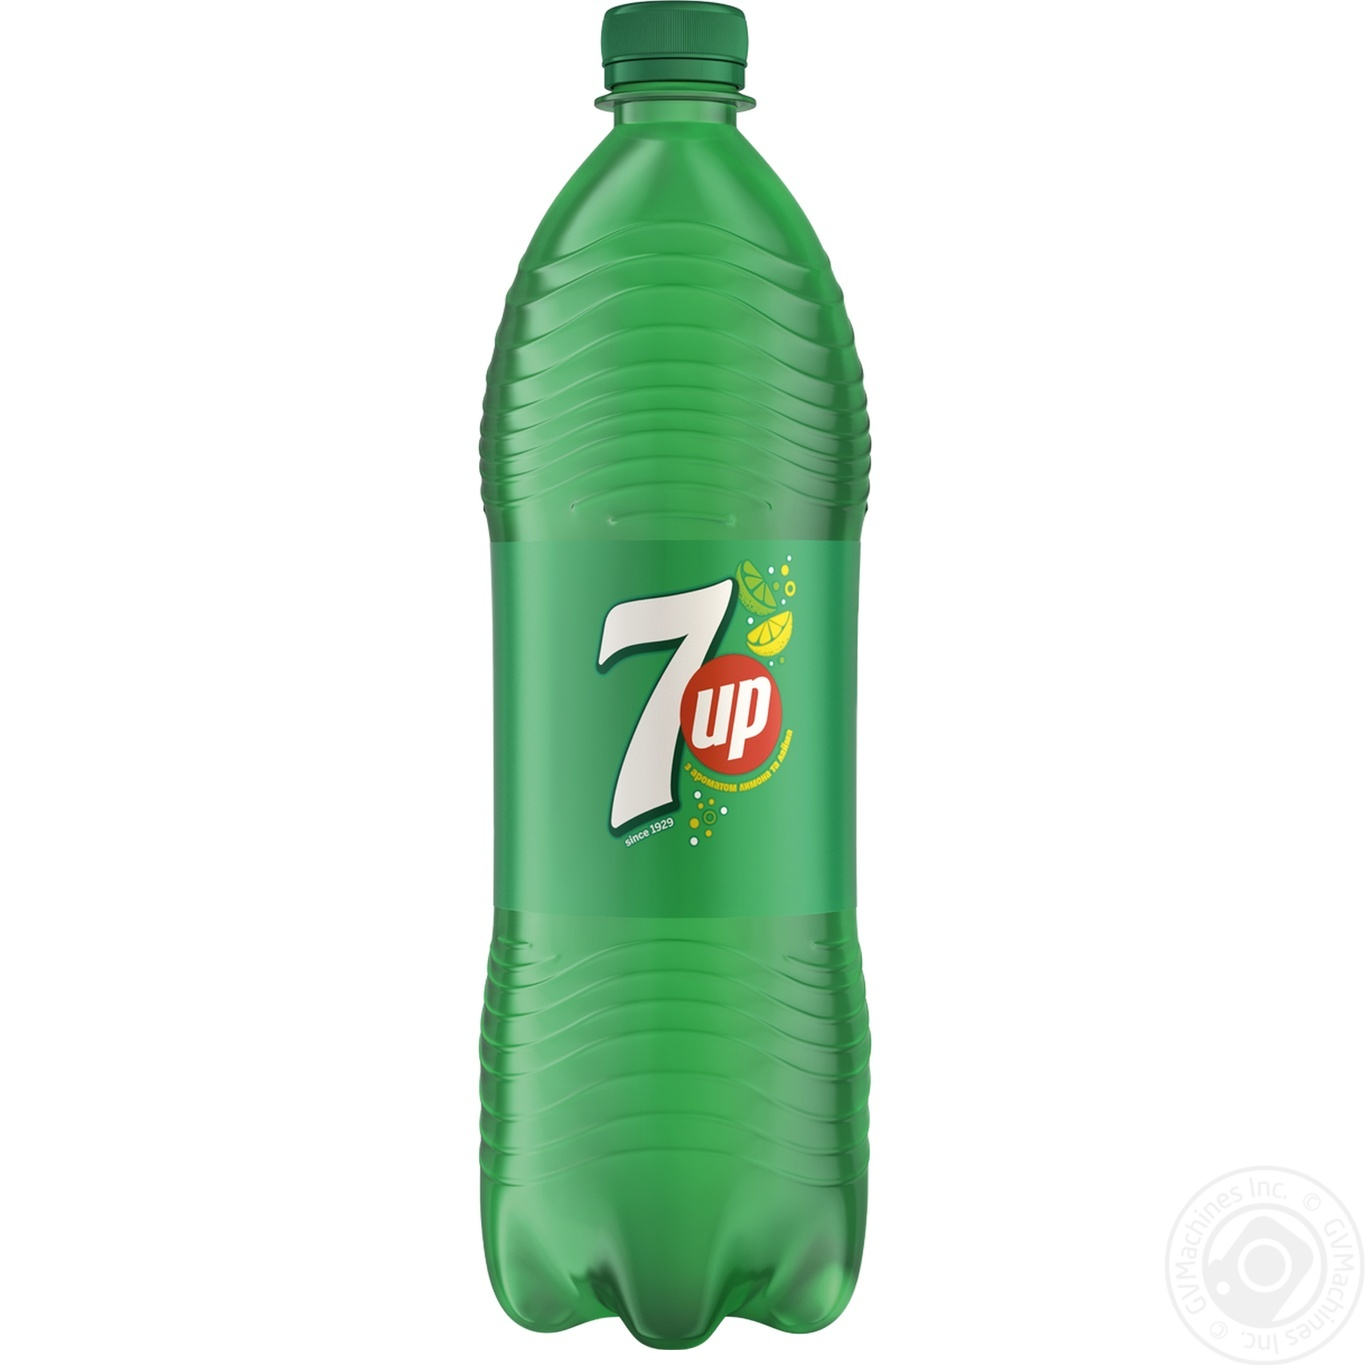 non alcoholic sparkling drink on flavorings 7up with lemon ang lime